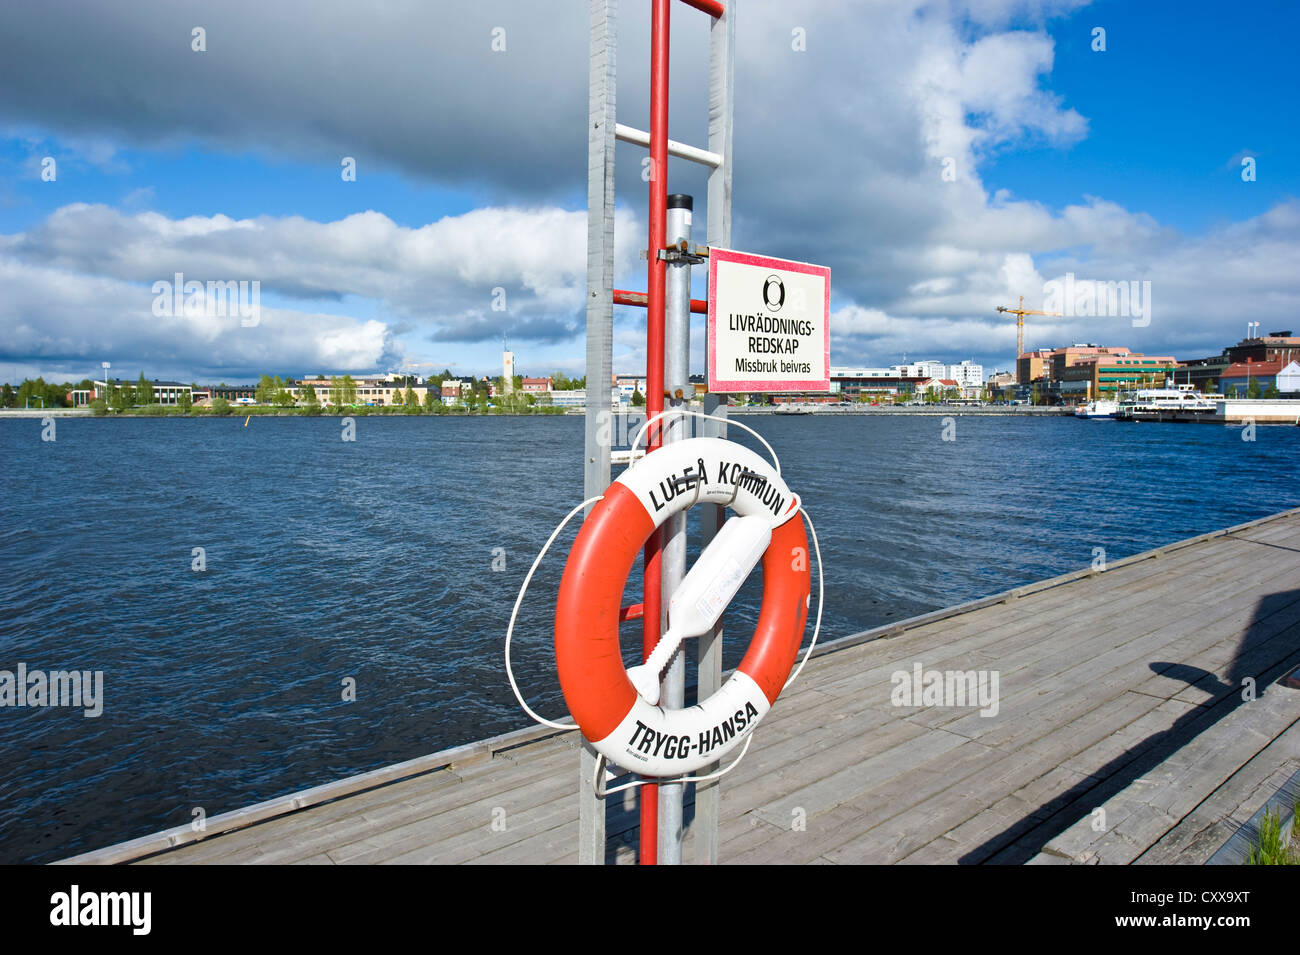 A lifebuoy by the Gulf of Bothnia in Luleå, Norrbotten County, Sweden. - Stock Image